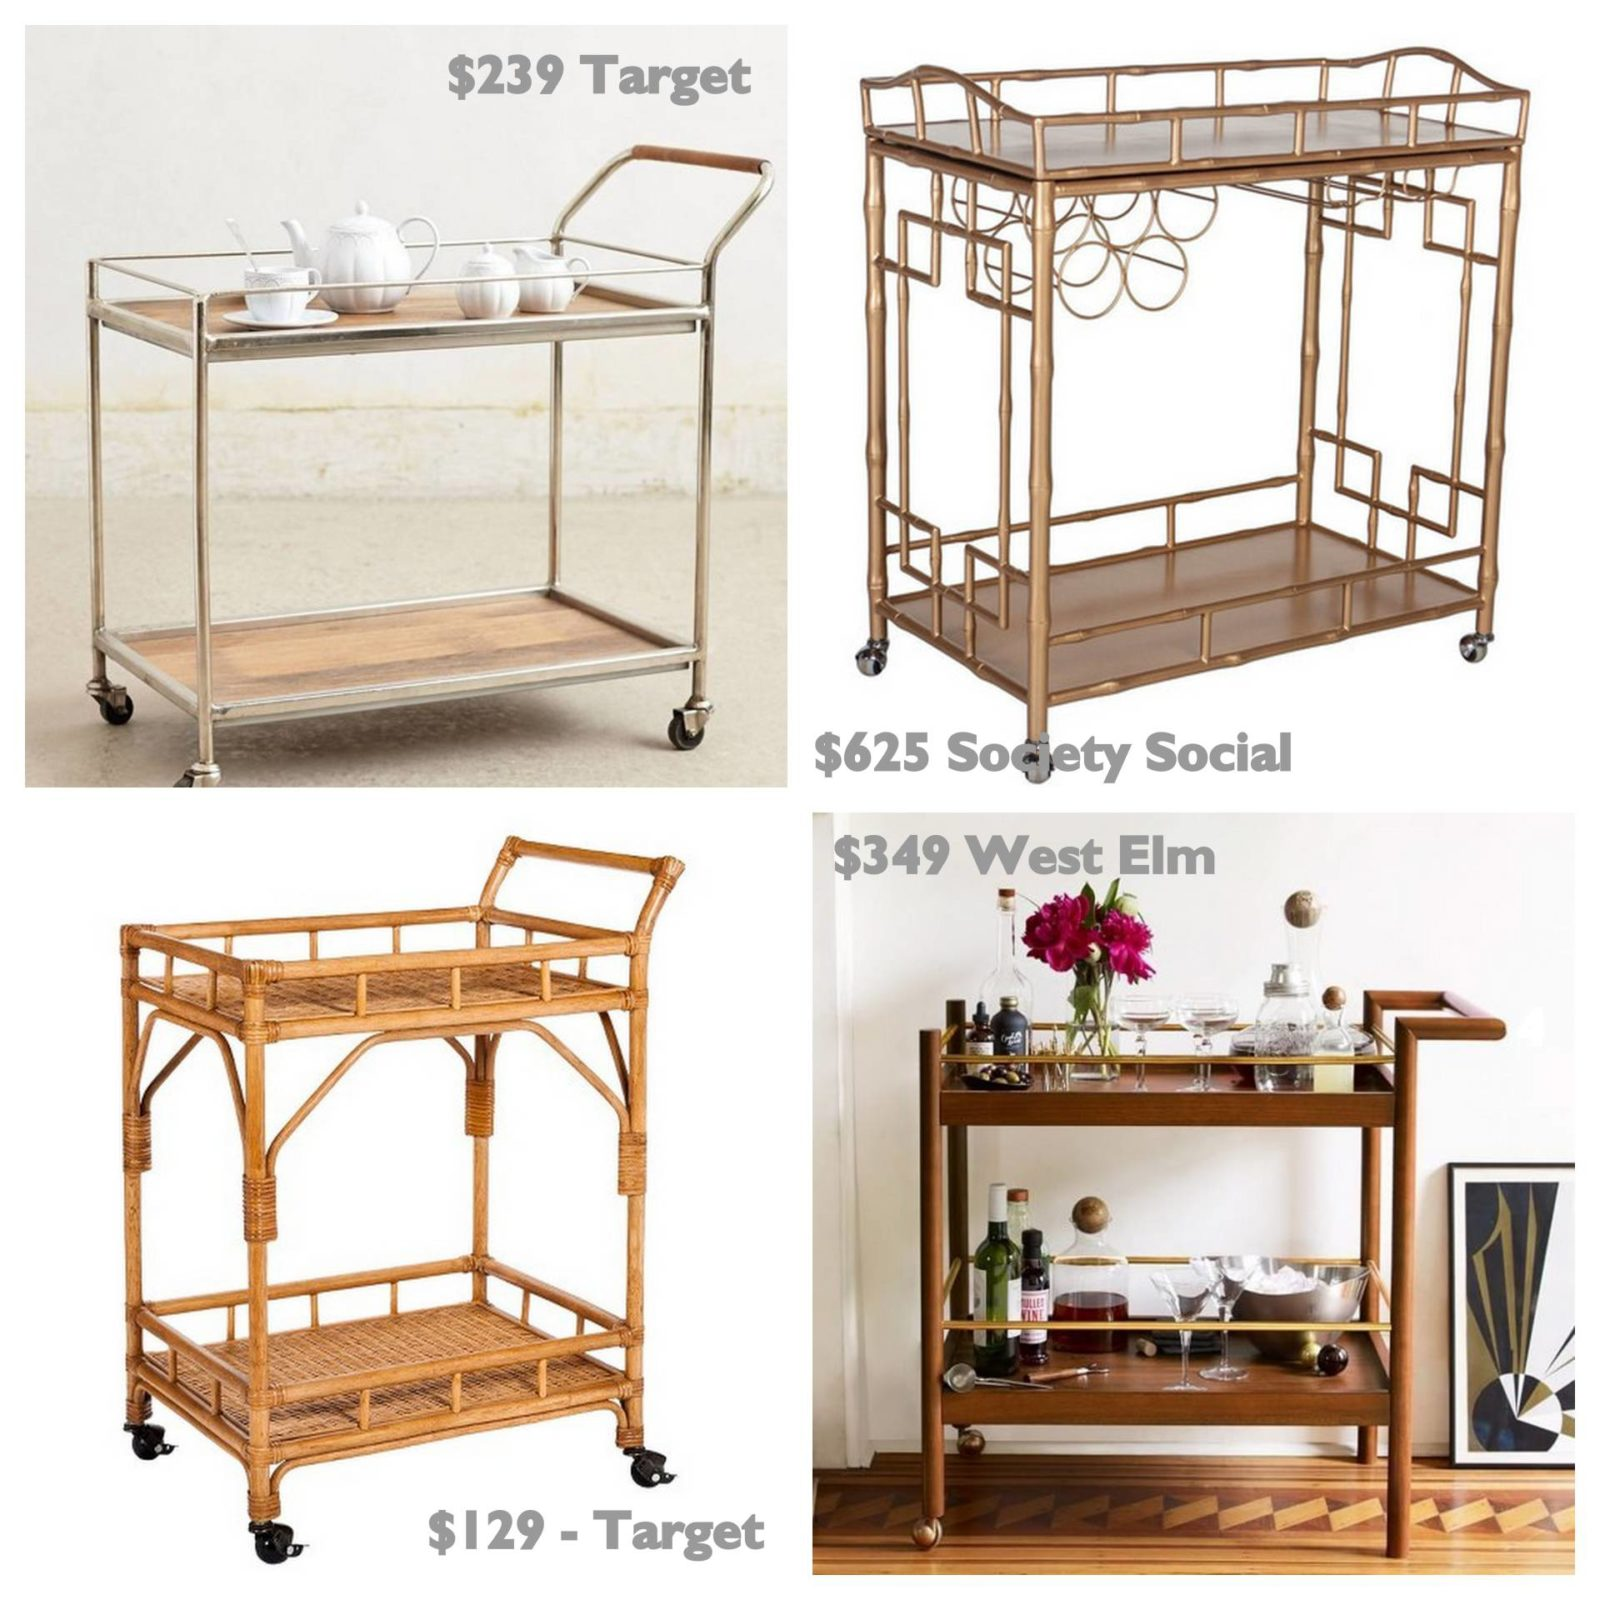 The Perfect Coffee Cart! Antique, DIY rattan cart spray painted gold